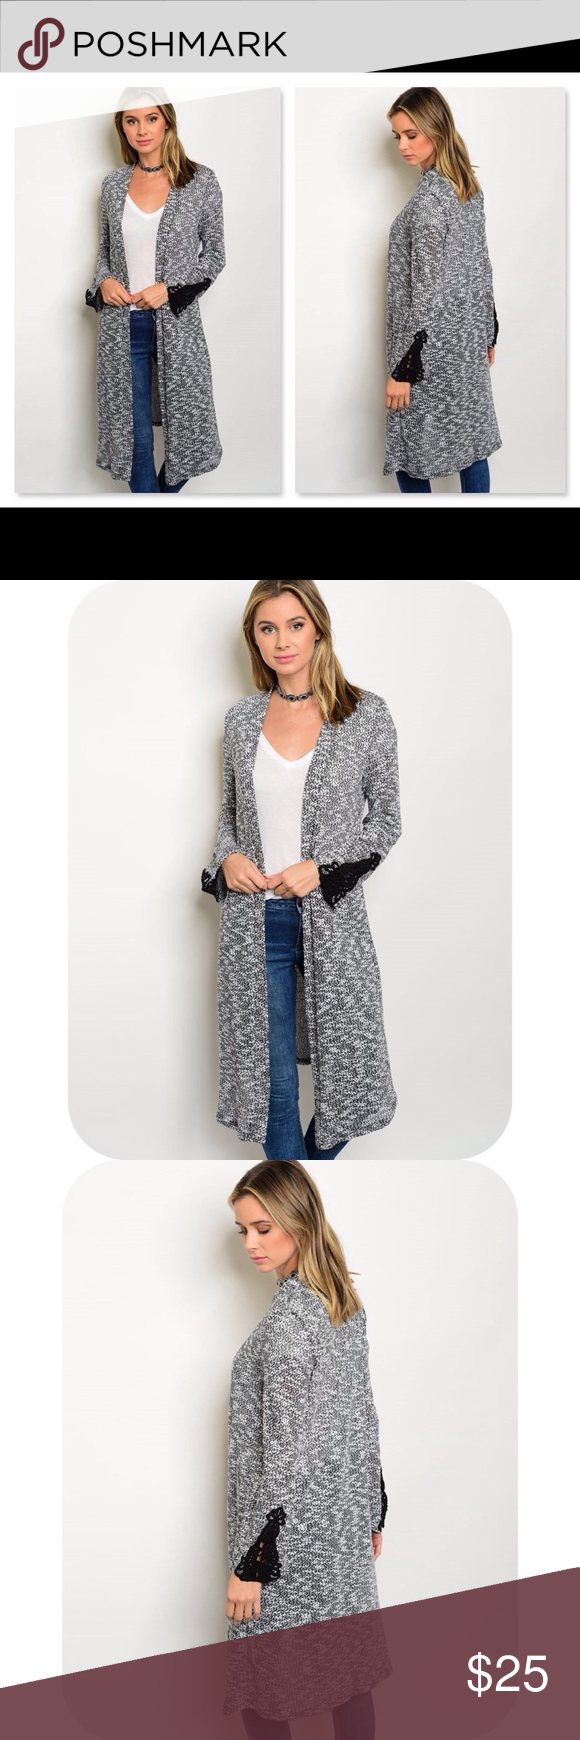 Midi open front cardigan w/lace accents nwt | Open front cardigan ...